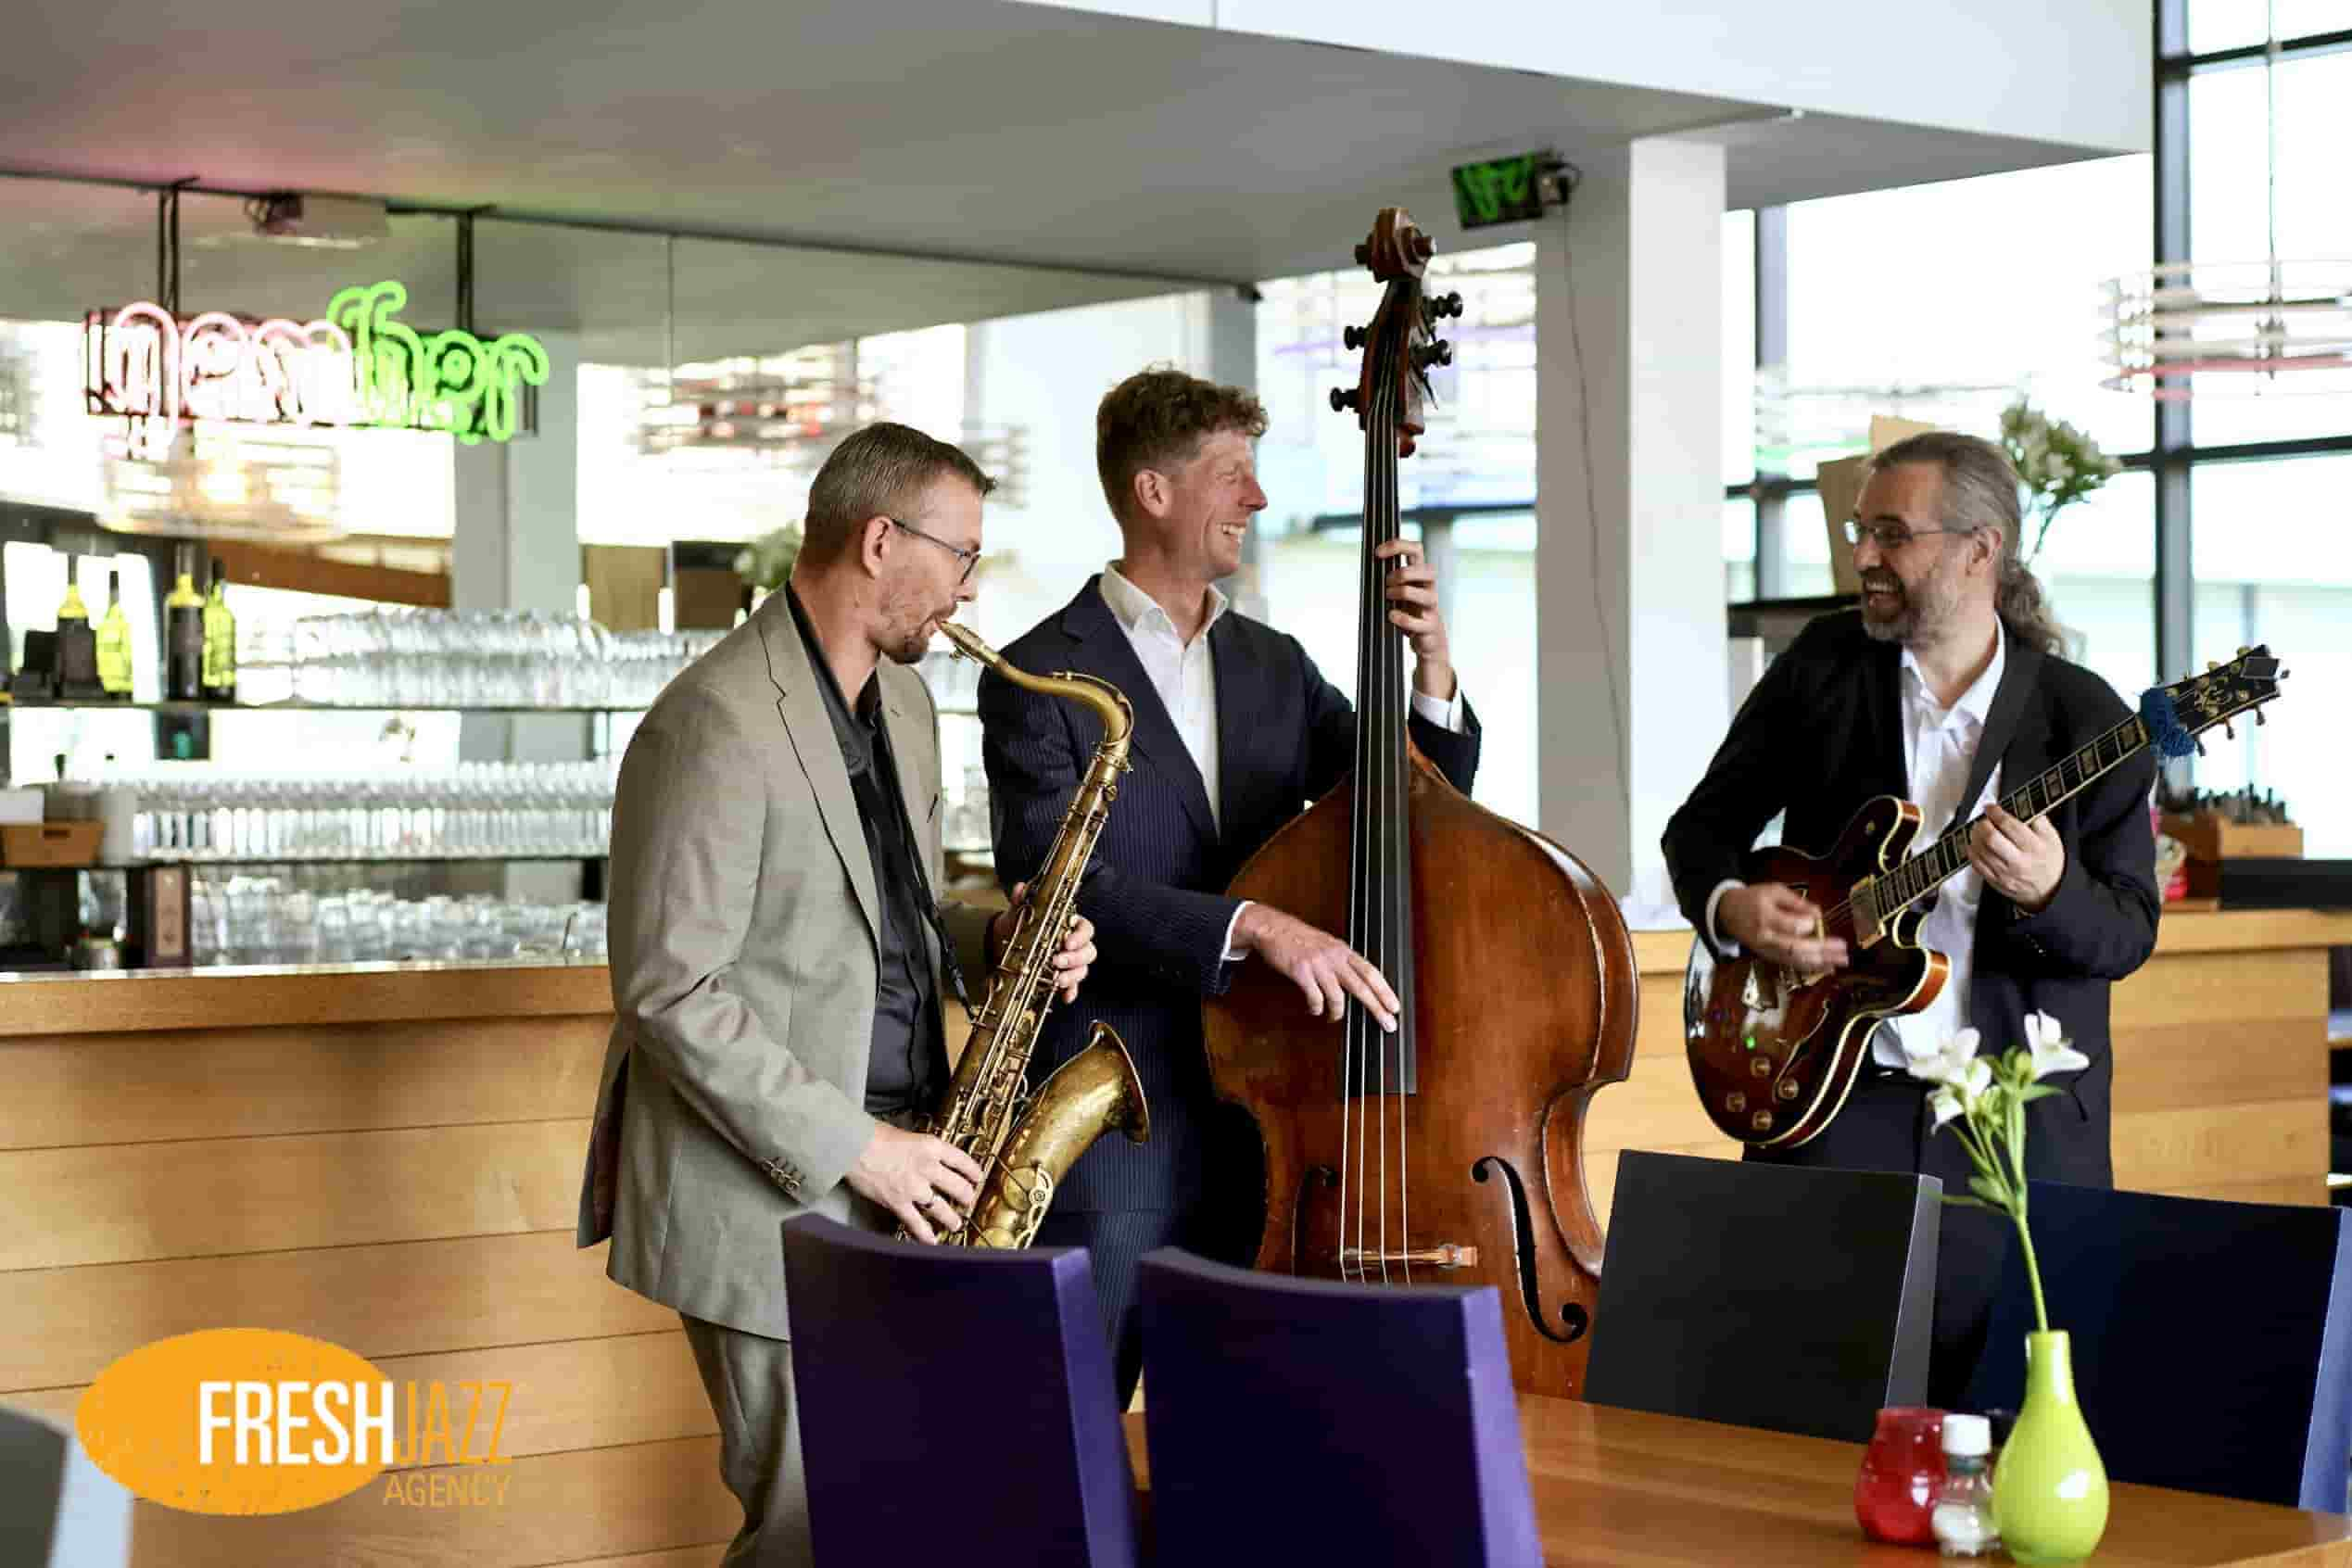 Jazz Trio Saxofoon Contrabas Gitaar | Fresh Jazz Agency